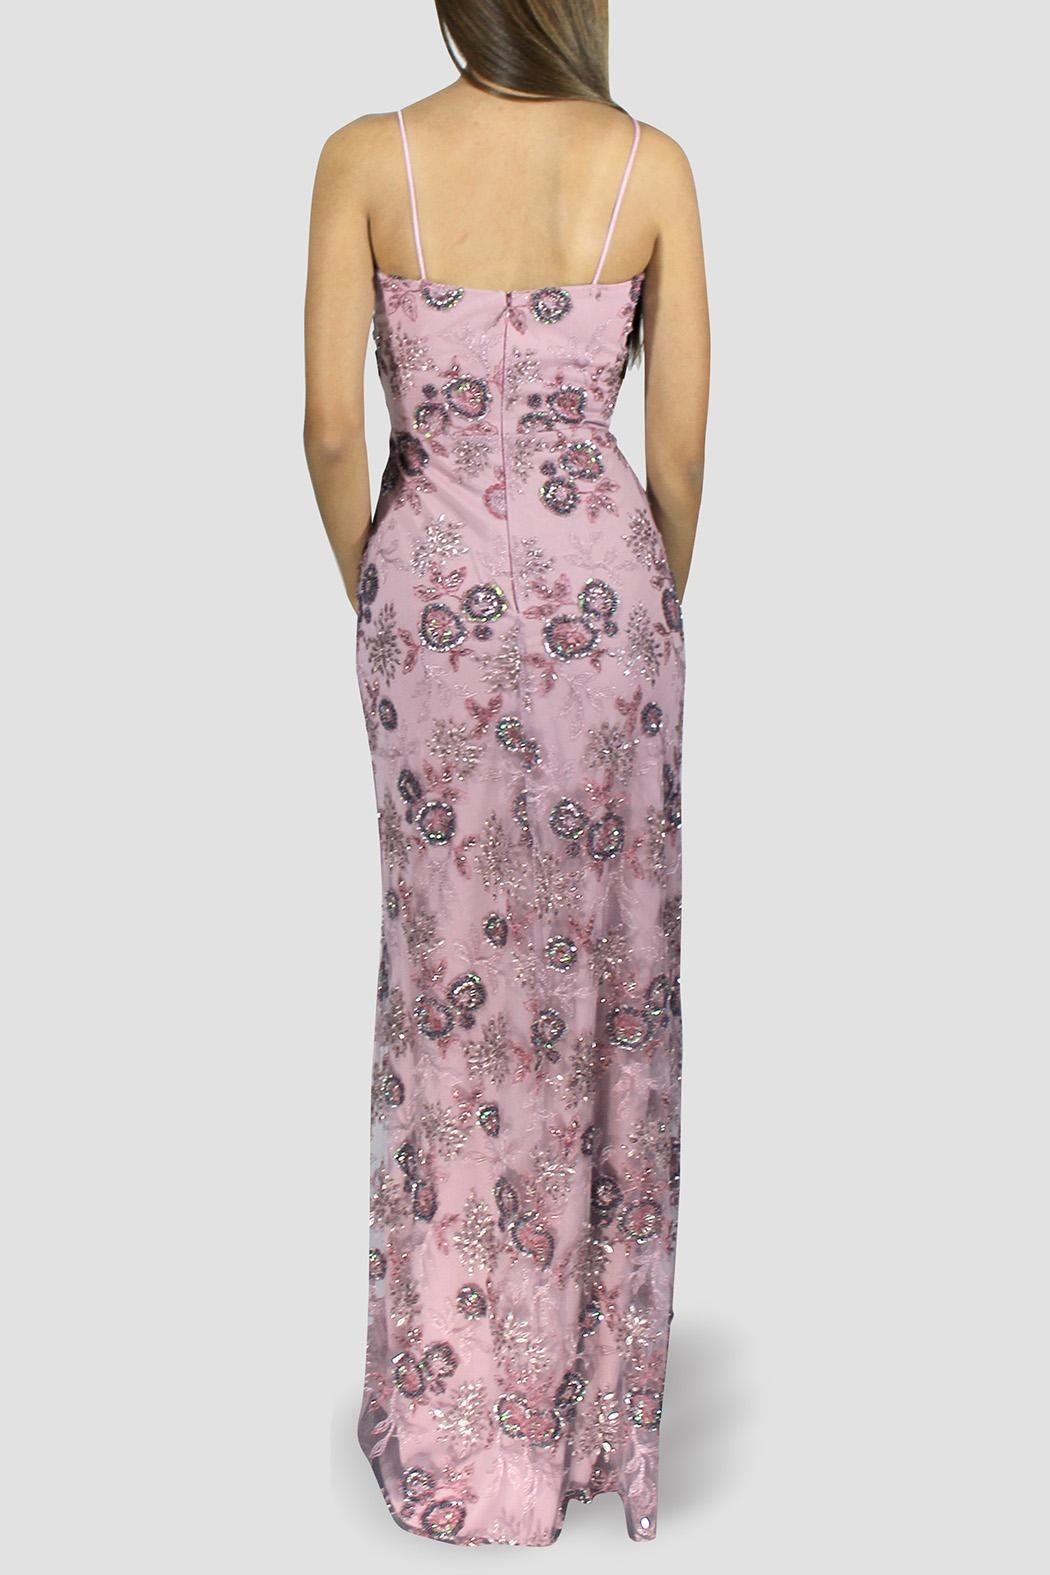 SoZu Periwinkle Floral Lace Dress - Side Cropped Image